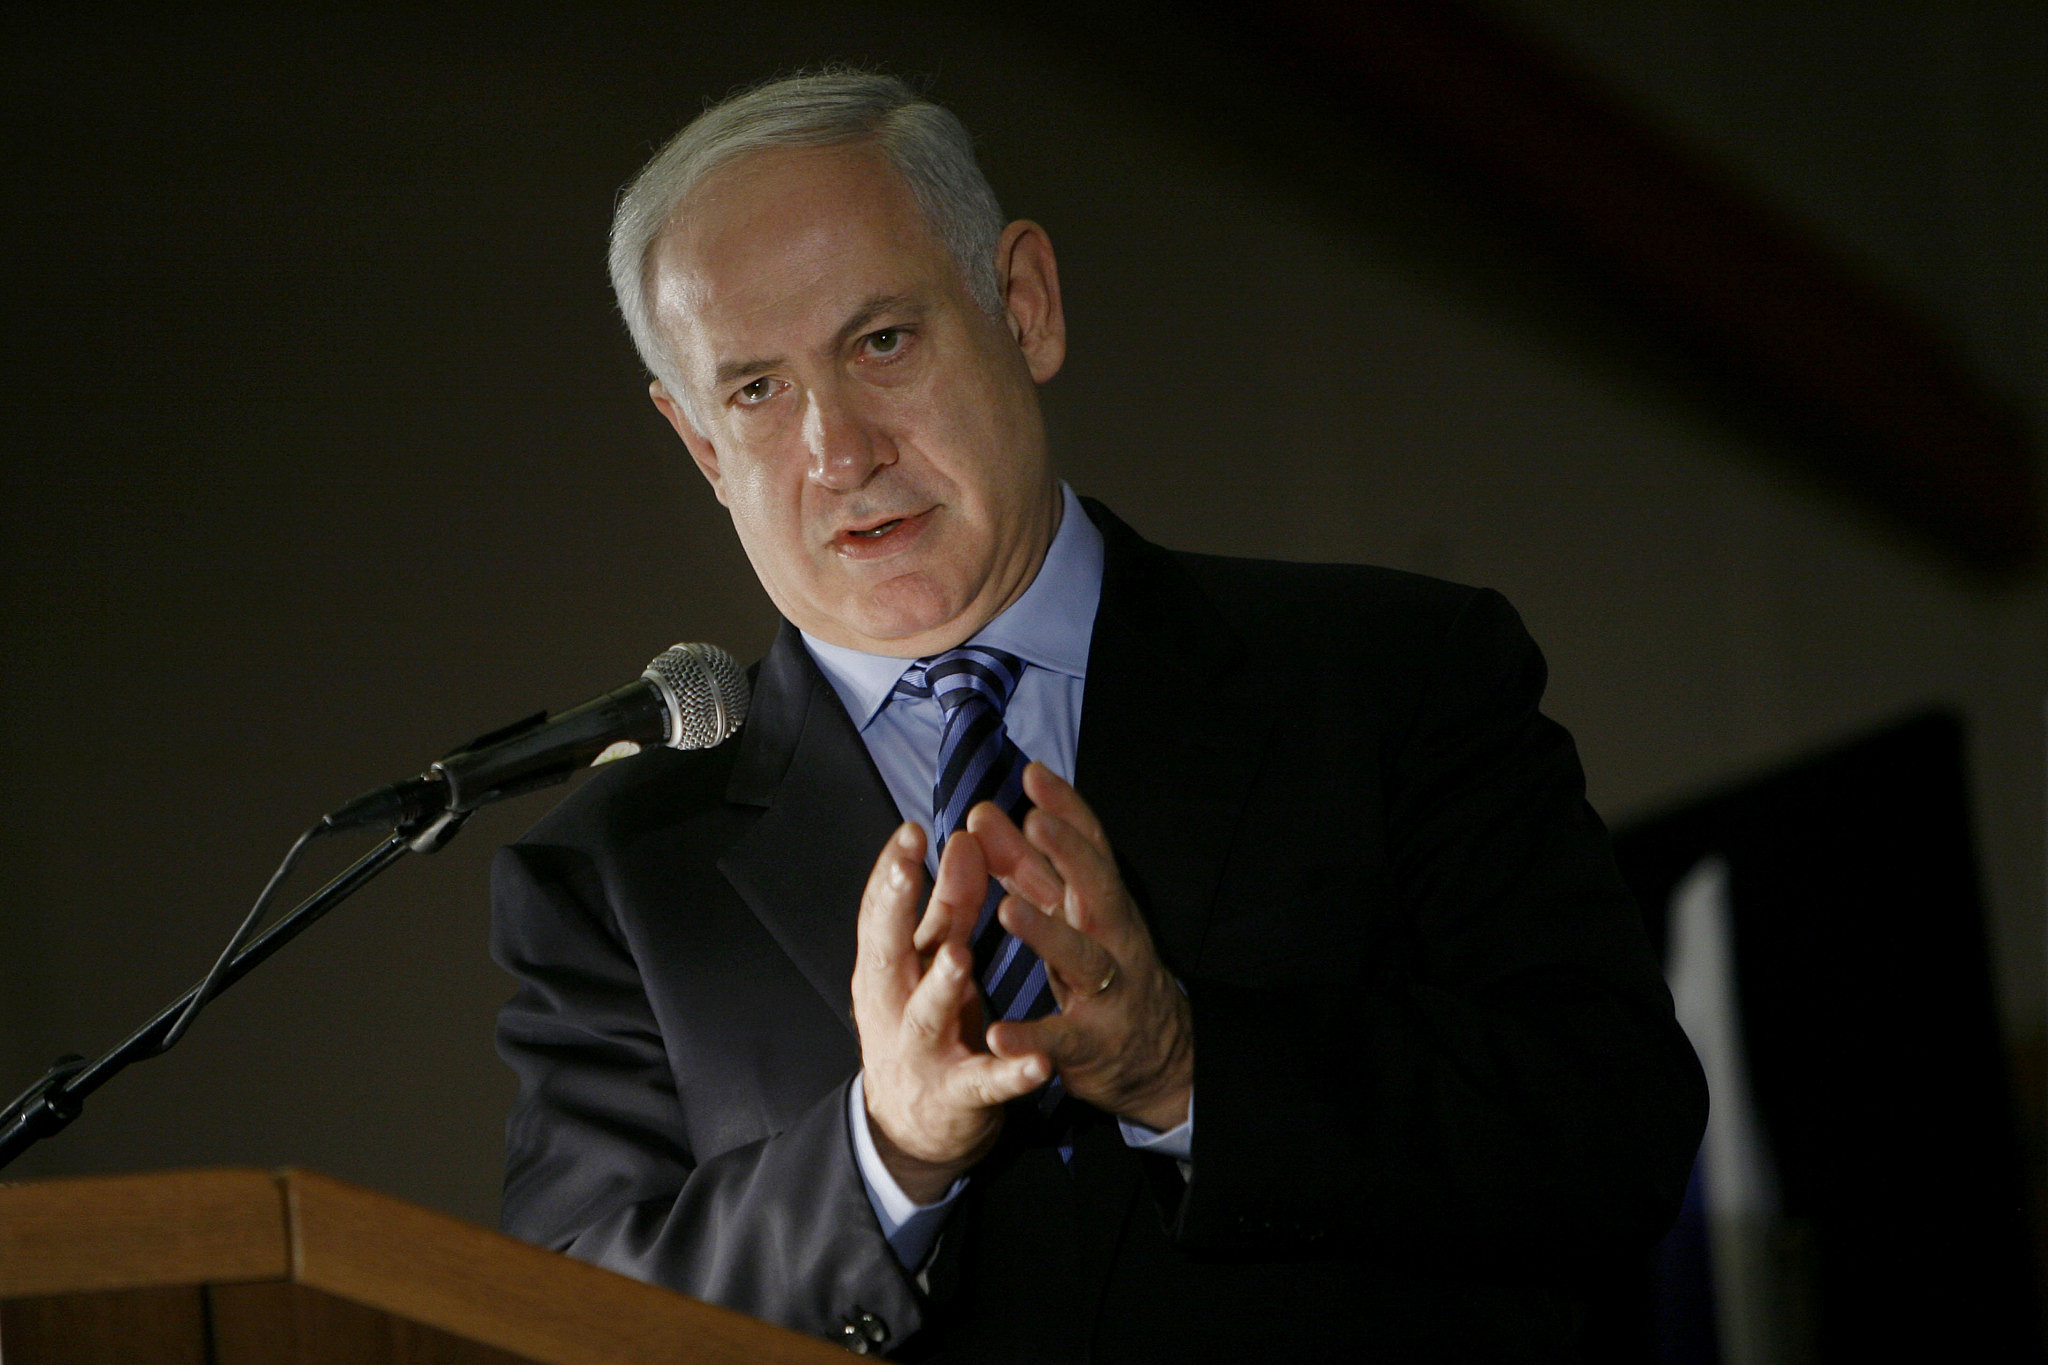 Israeli Prime Minister Benjamin Netanyahu speaks at a conference organized by the Jewish Agency at the Inbal Hotel in Jerusalem, October 25, 2009. (Miriam Alster/Flash90)